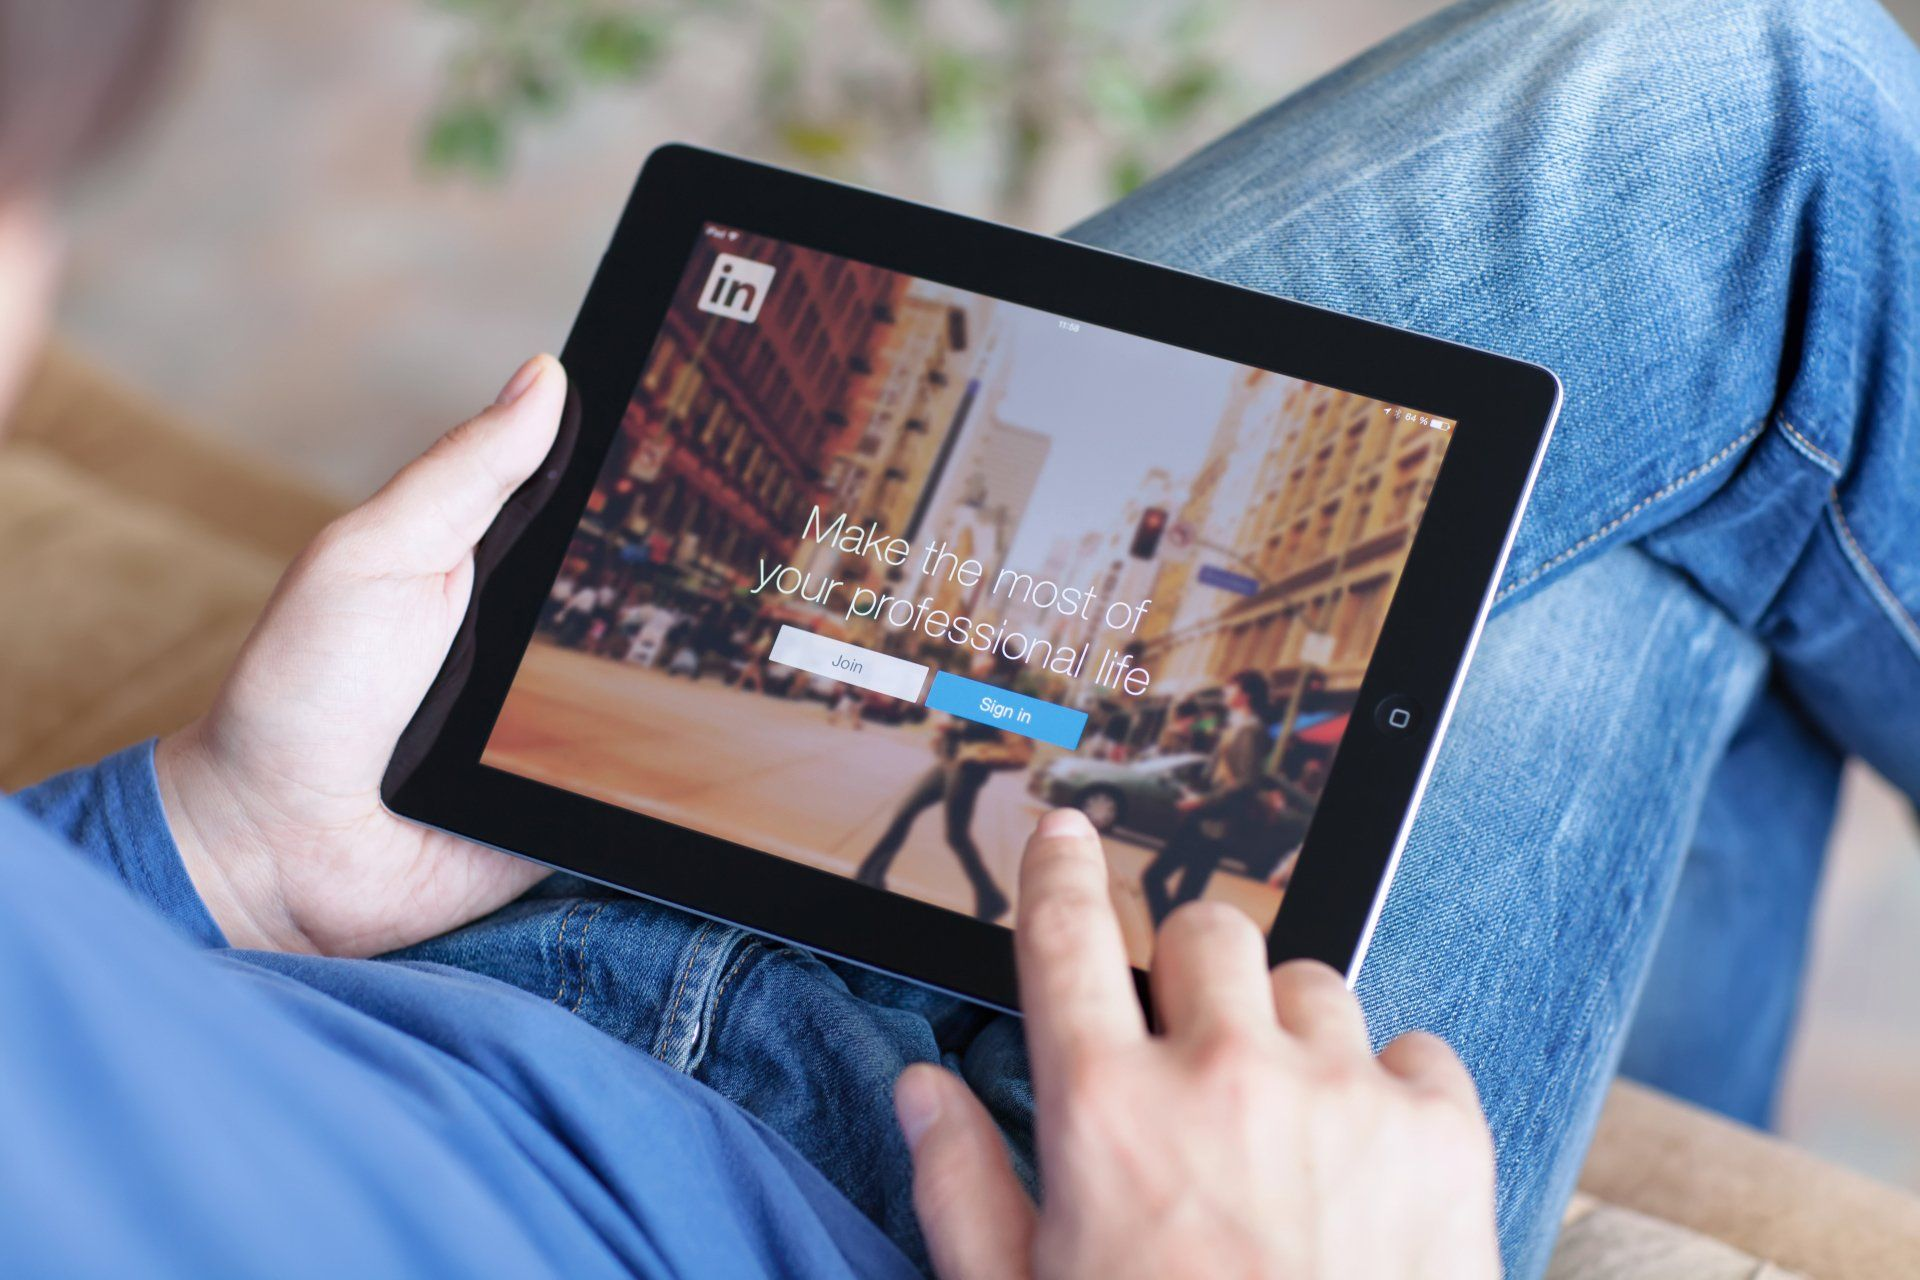 How to increase sales using LinkedIn